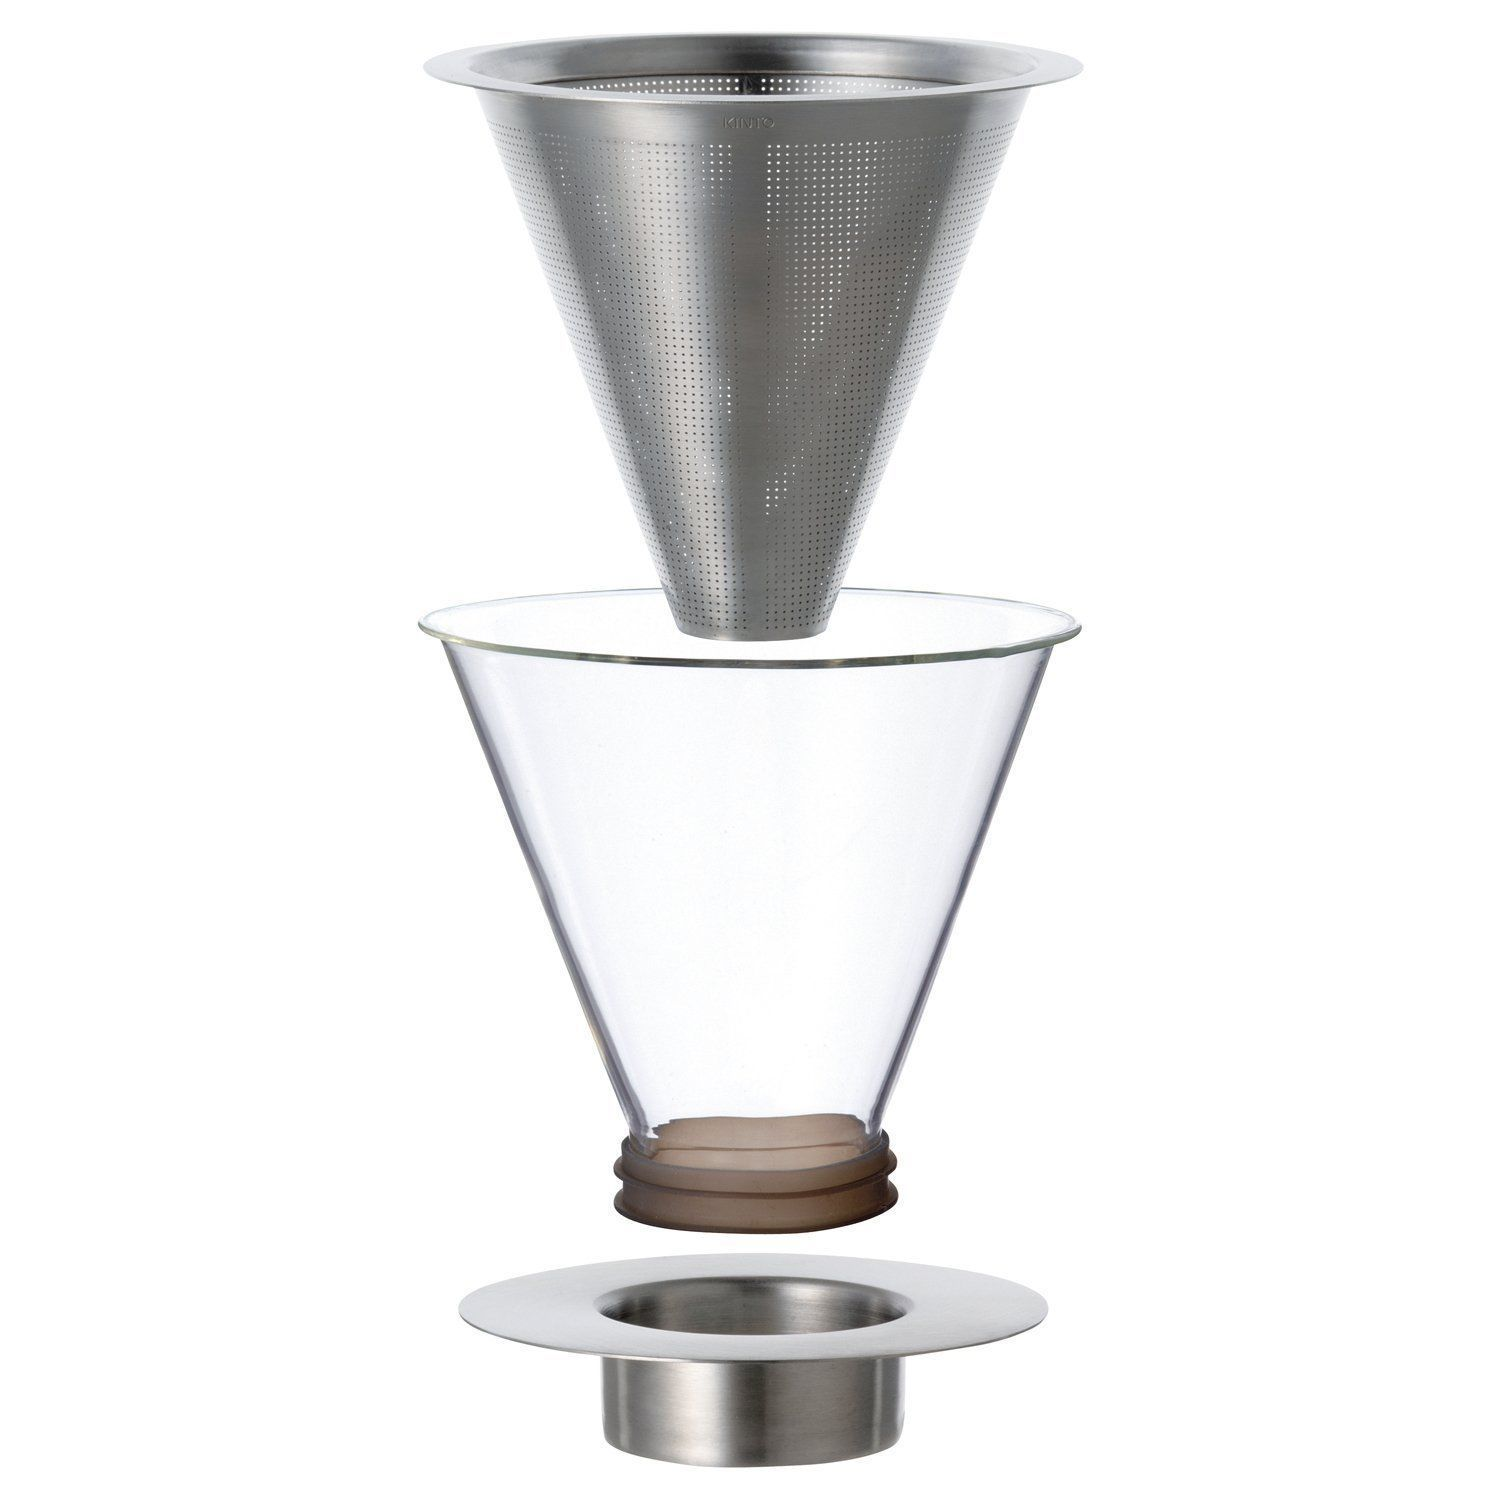 700 ml Carat Coffee Dripper and Pot with Lid by Kinto image 3